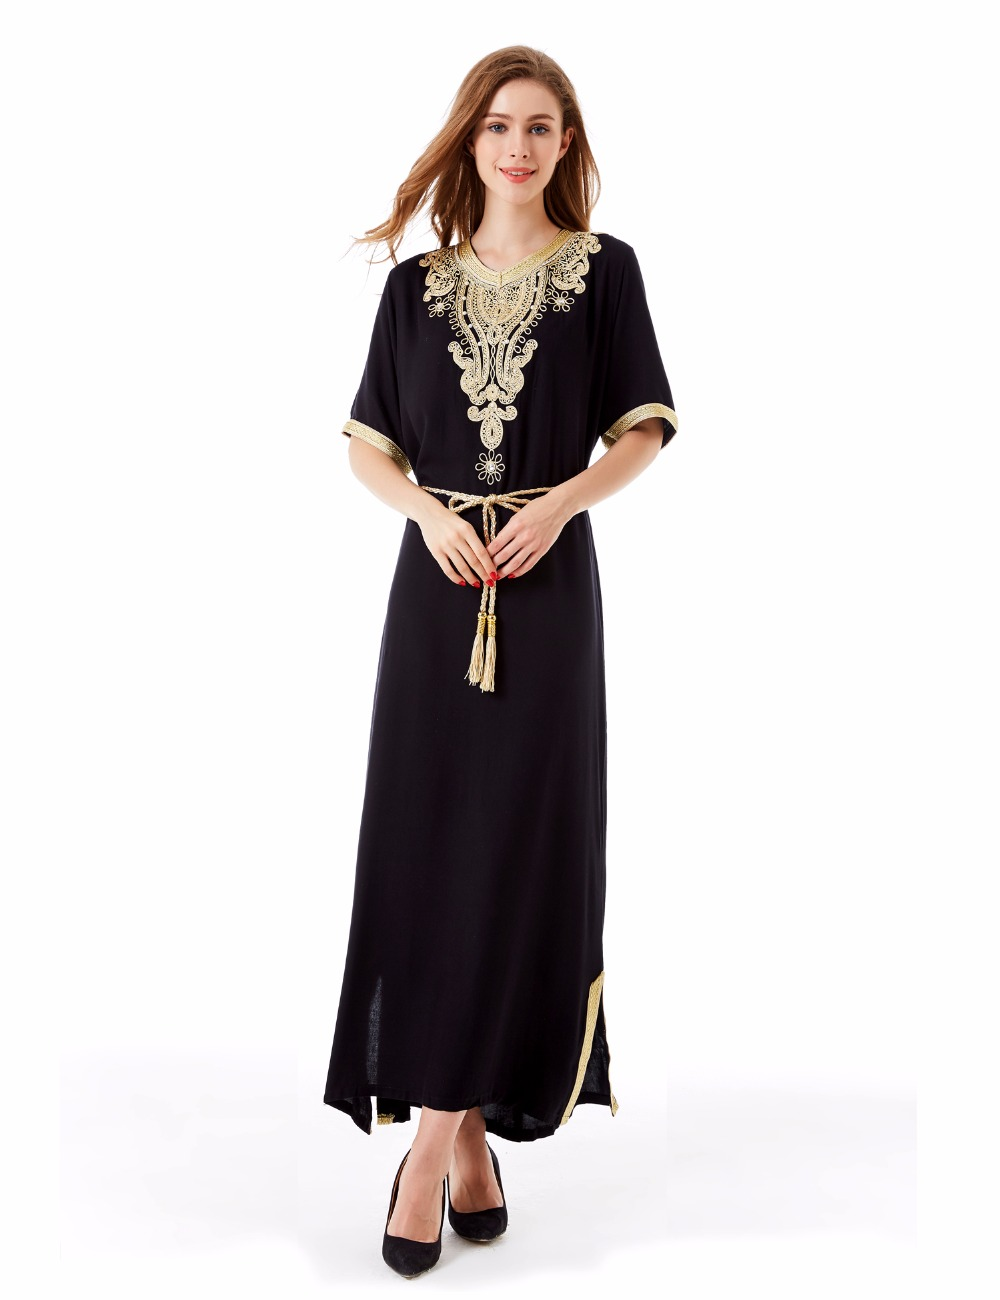 Women islamic clothing Long Dubai Jalabiya Dress moroccan Kaftan Caftan Islamic Abaya Turkish fashion Muslim dress arab robe1605